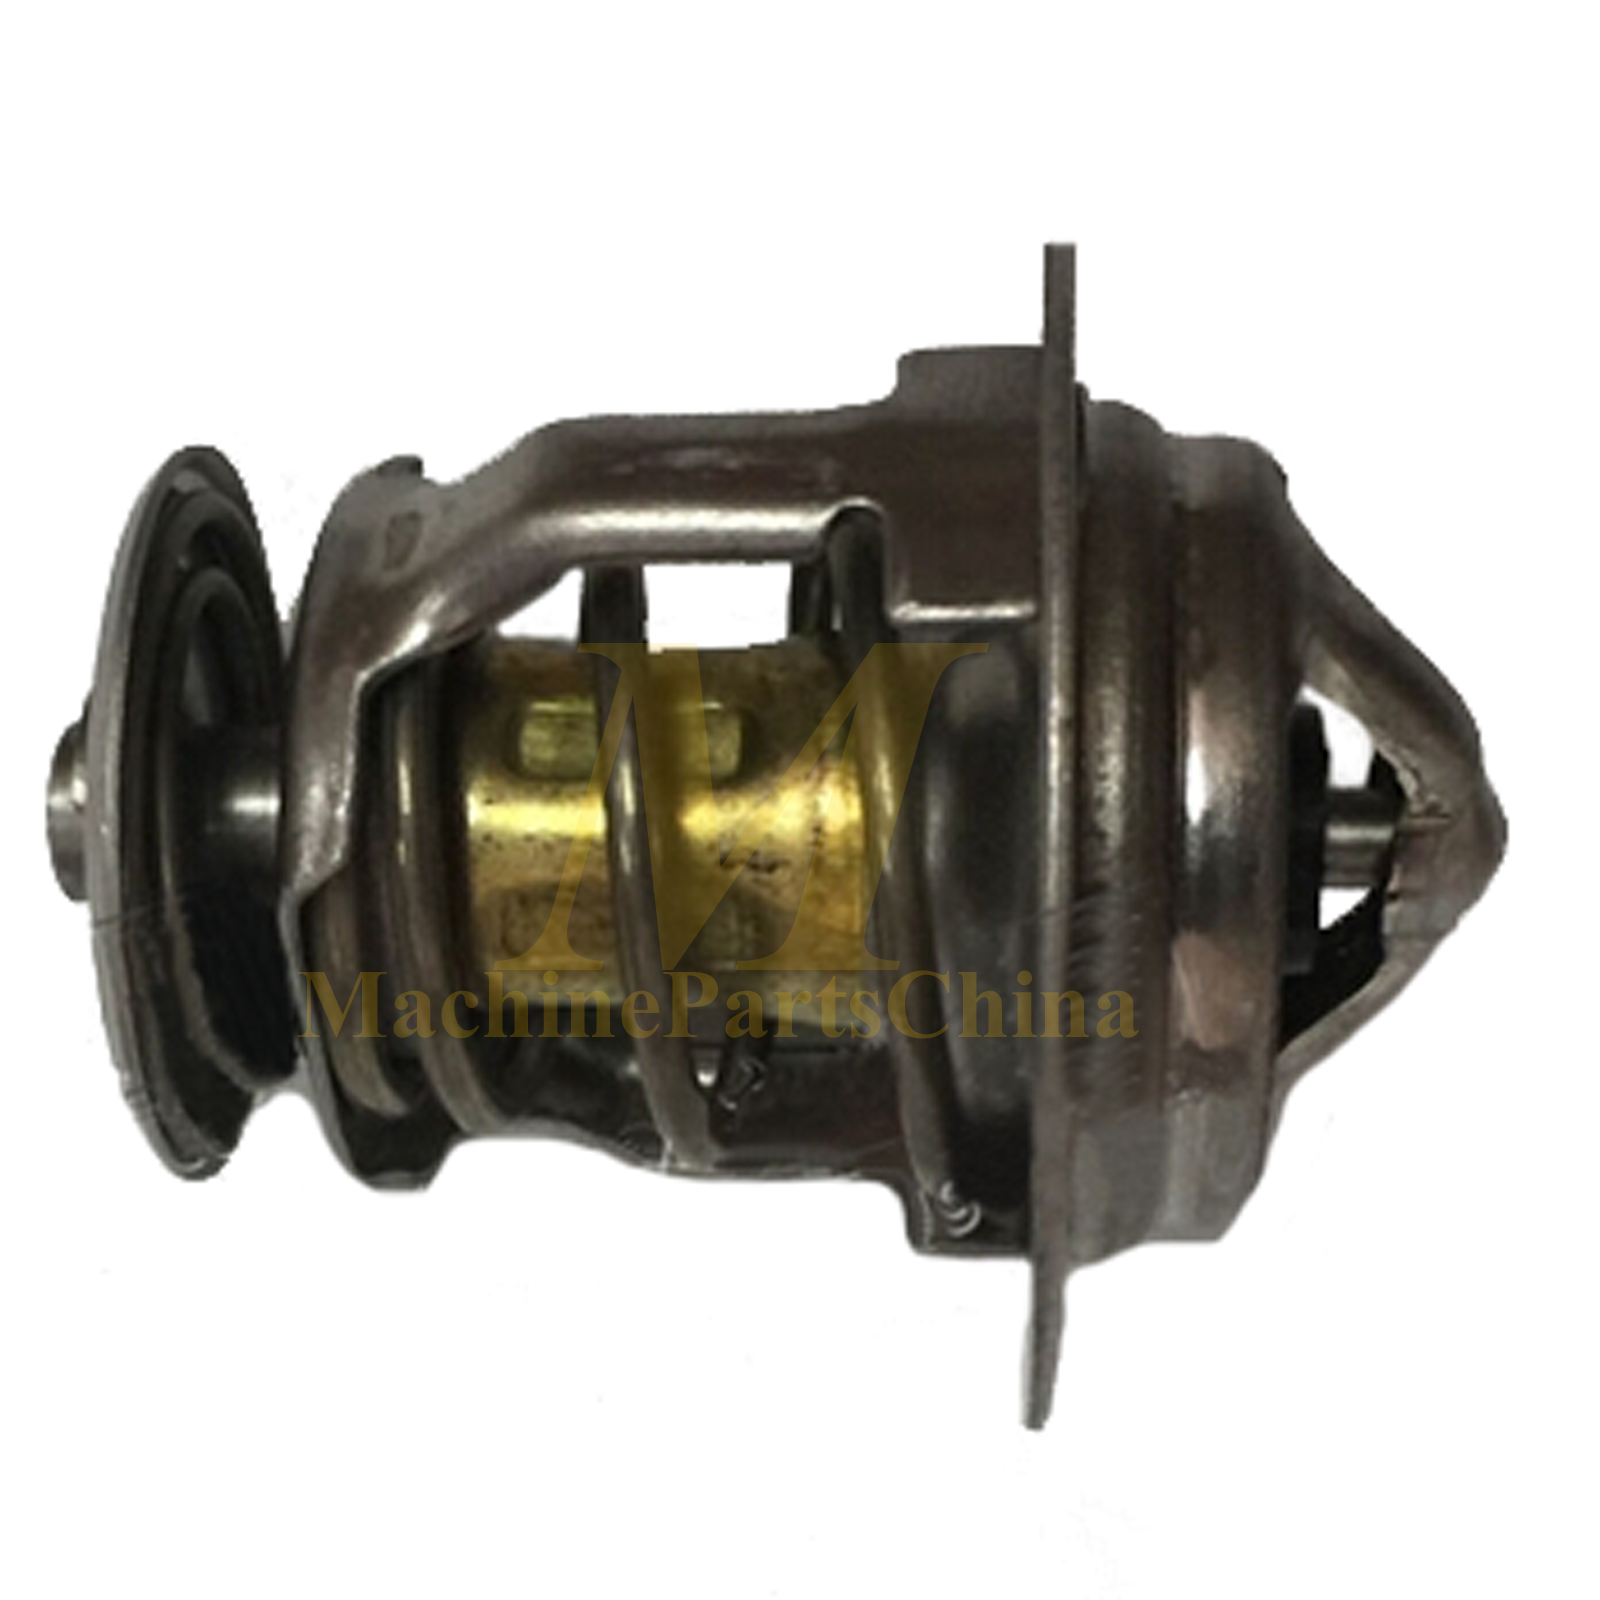 8971606540 Thermostat for Isuzu Engine John Deere 27ZTS 35ZTS Excavator